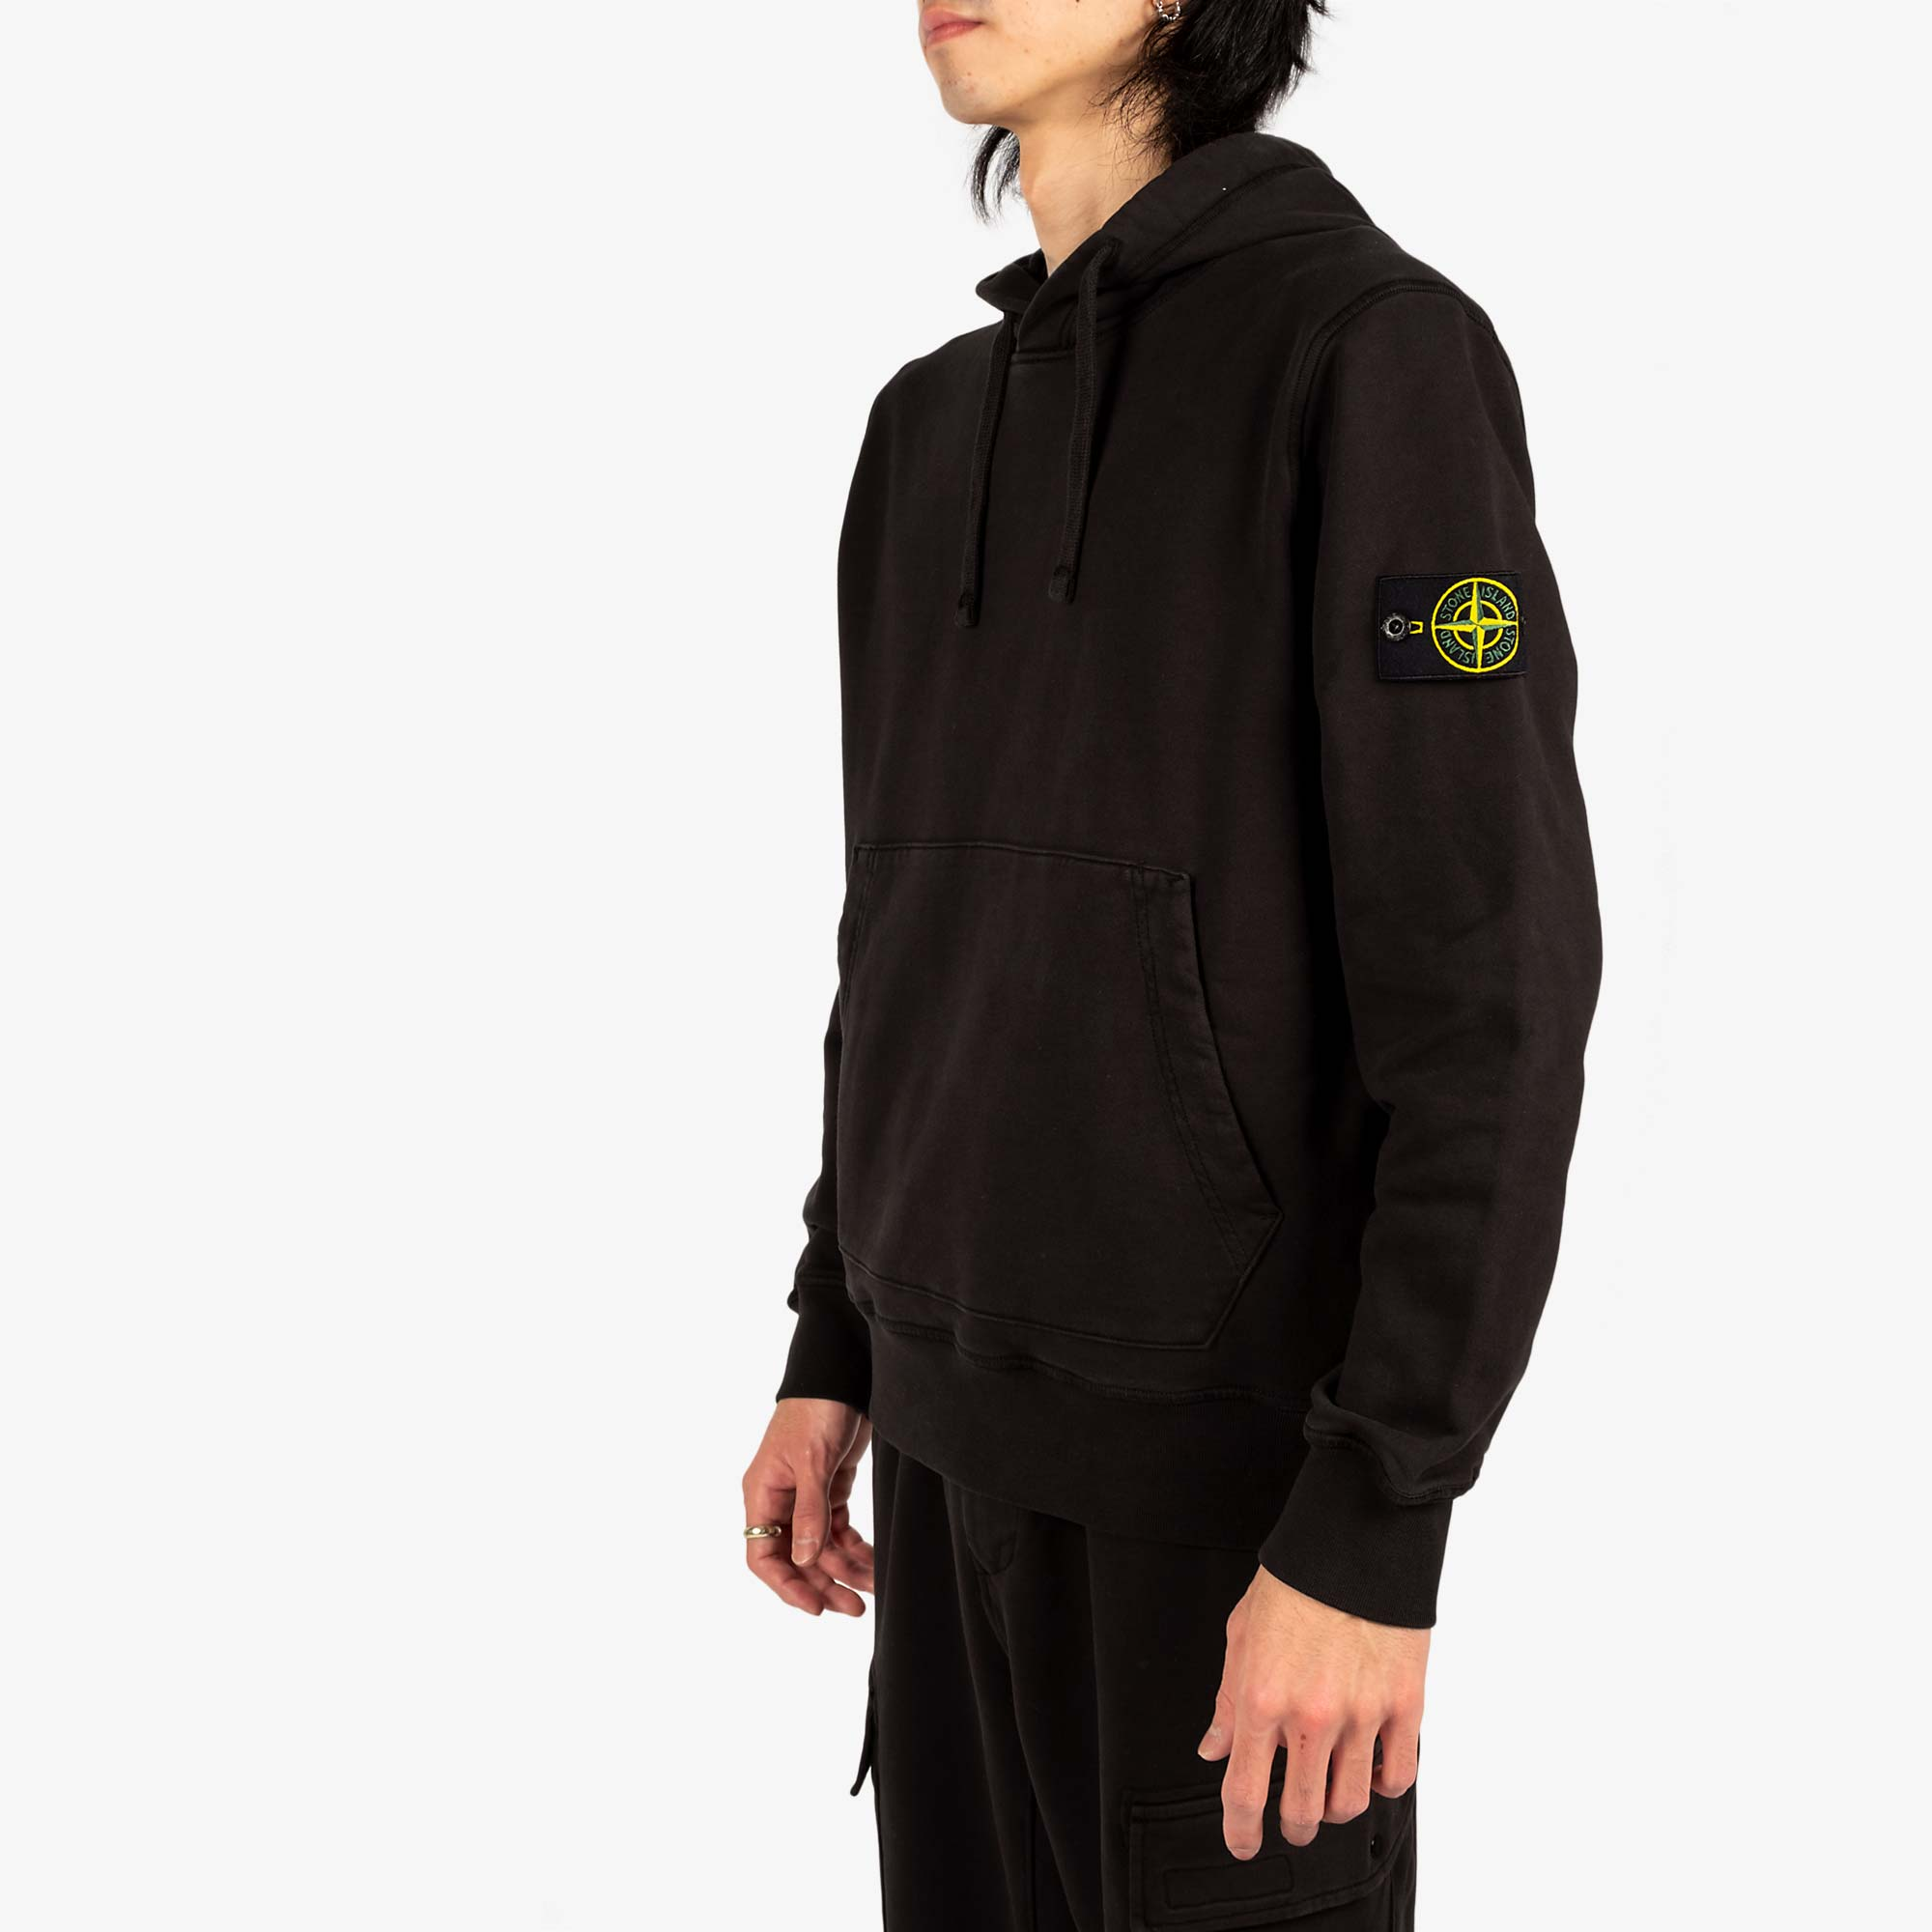 Stone Island Garment Dyed Hooded Sweat 741564151 - Black 7